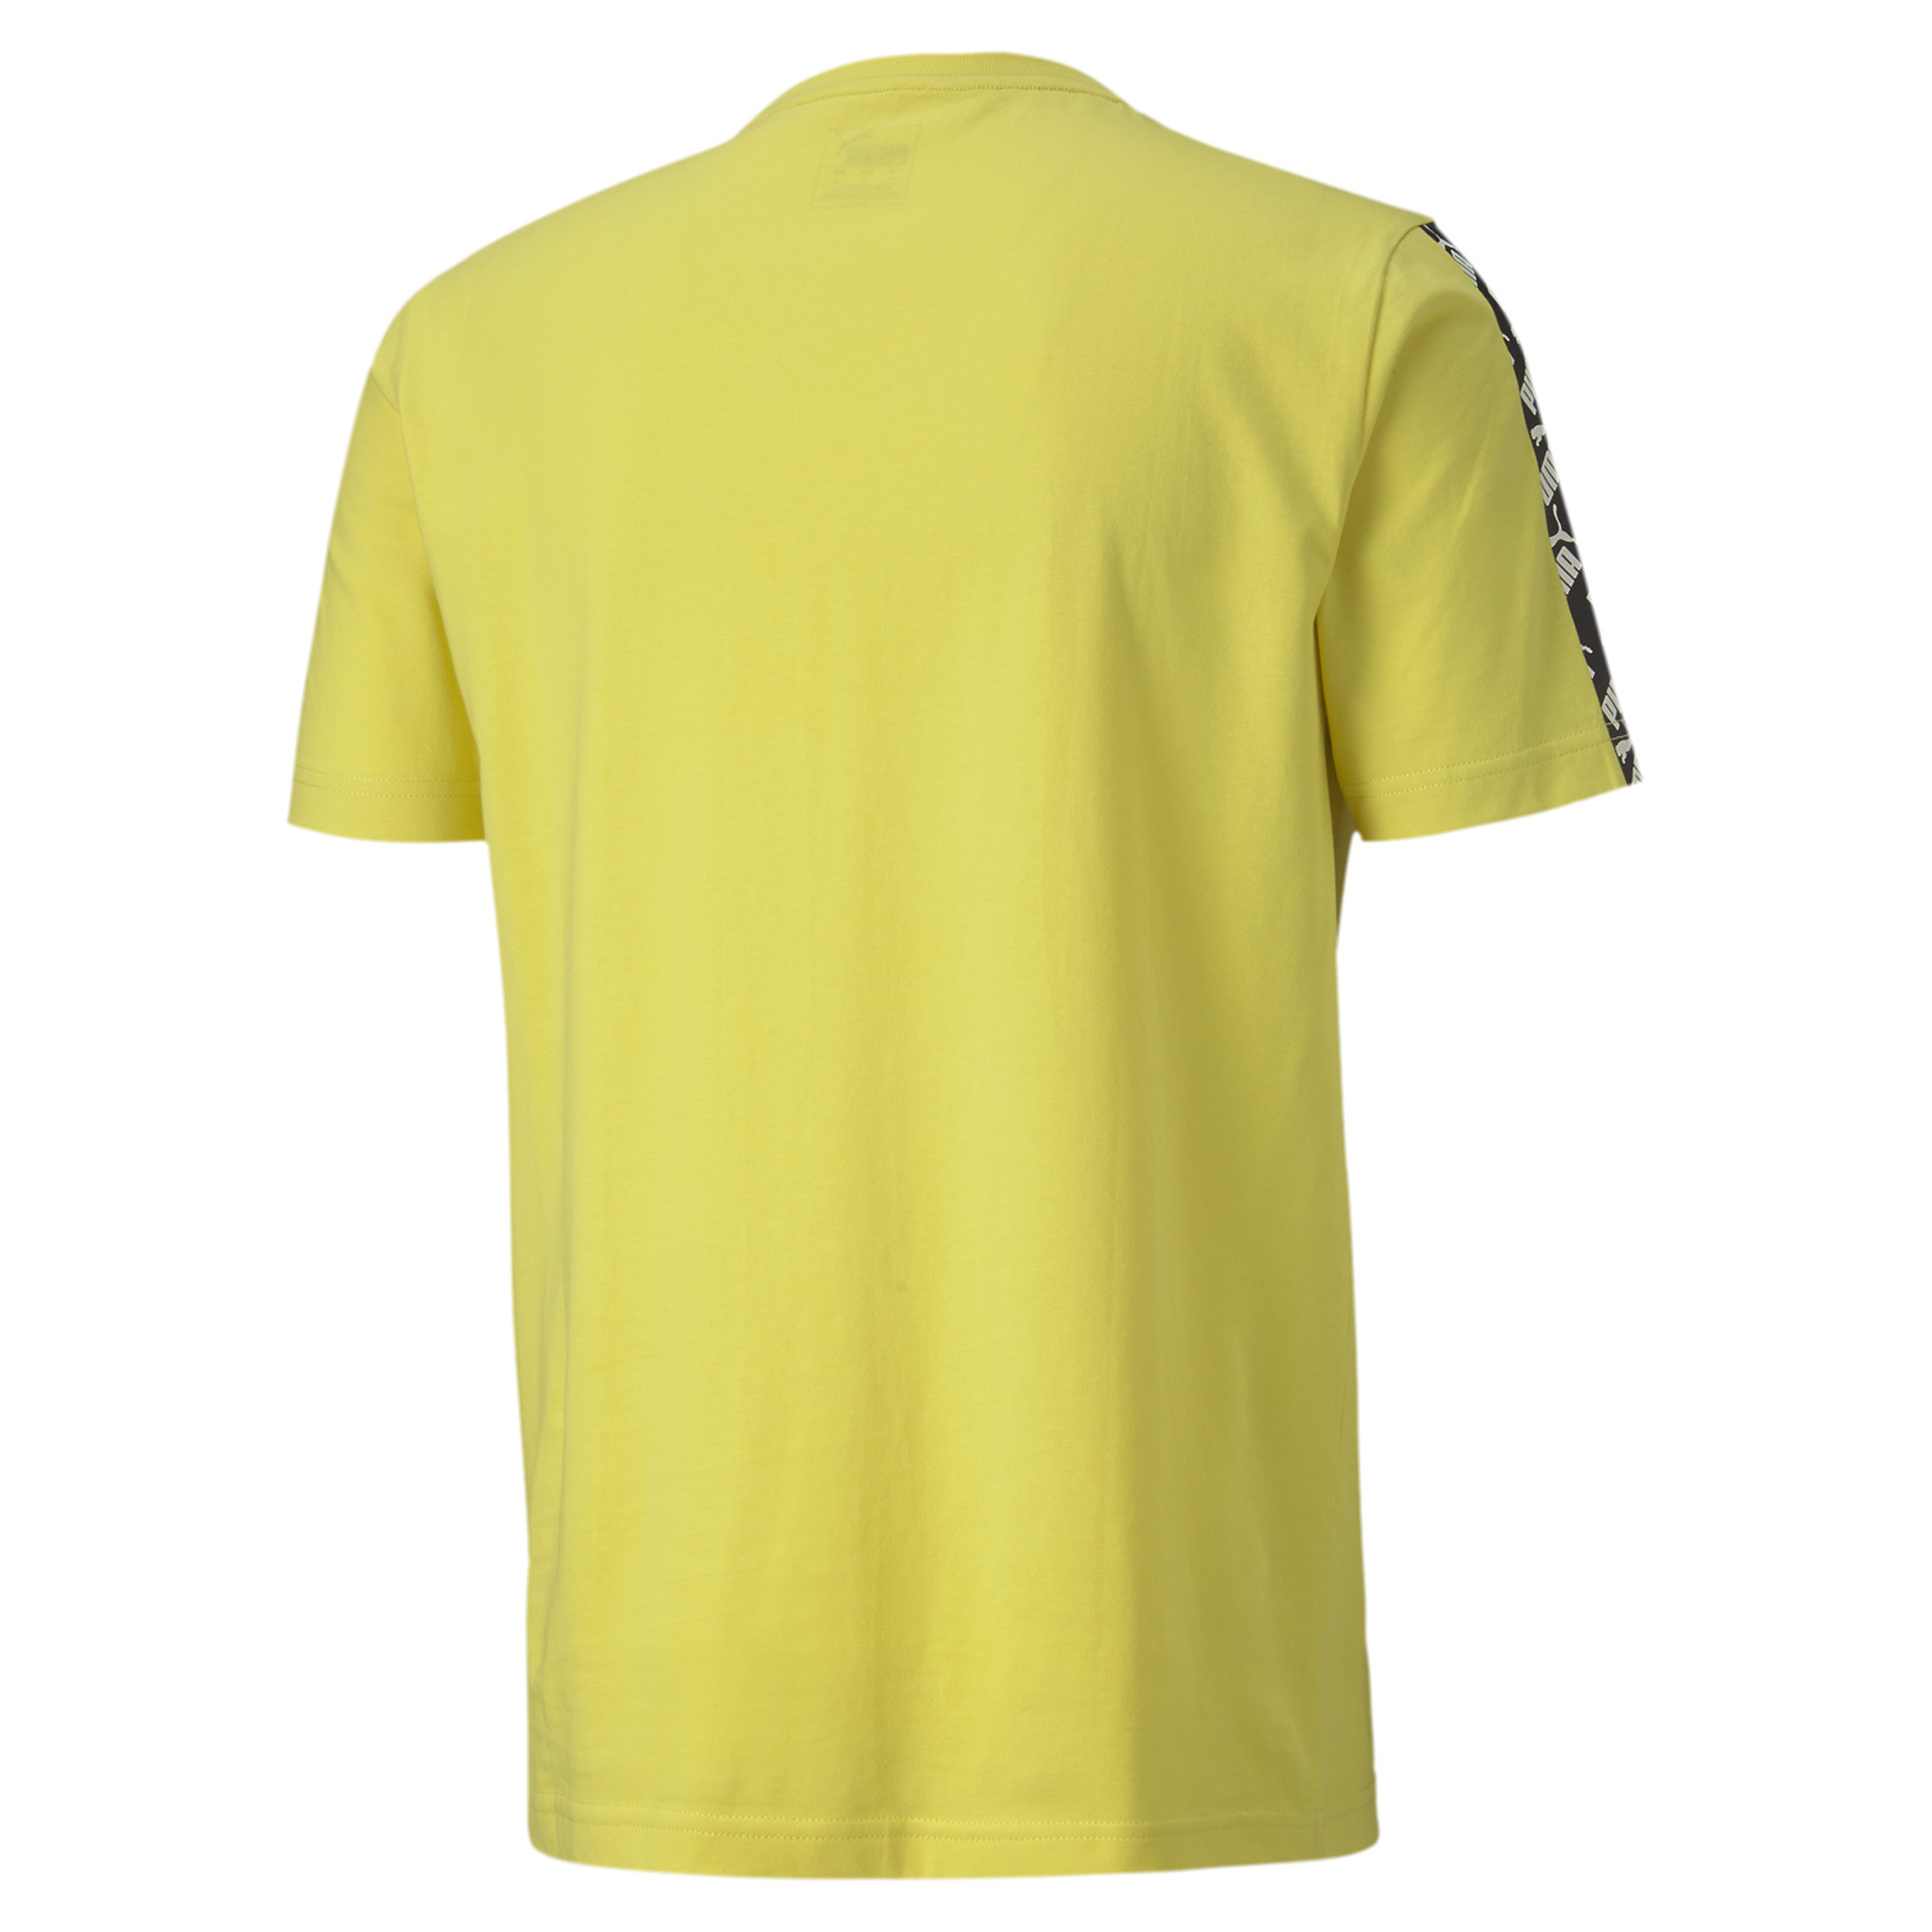 PUMA-Amplified-Men-039-s-Tee-Men-Tee-Basics thumbnail 9